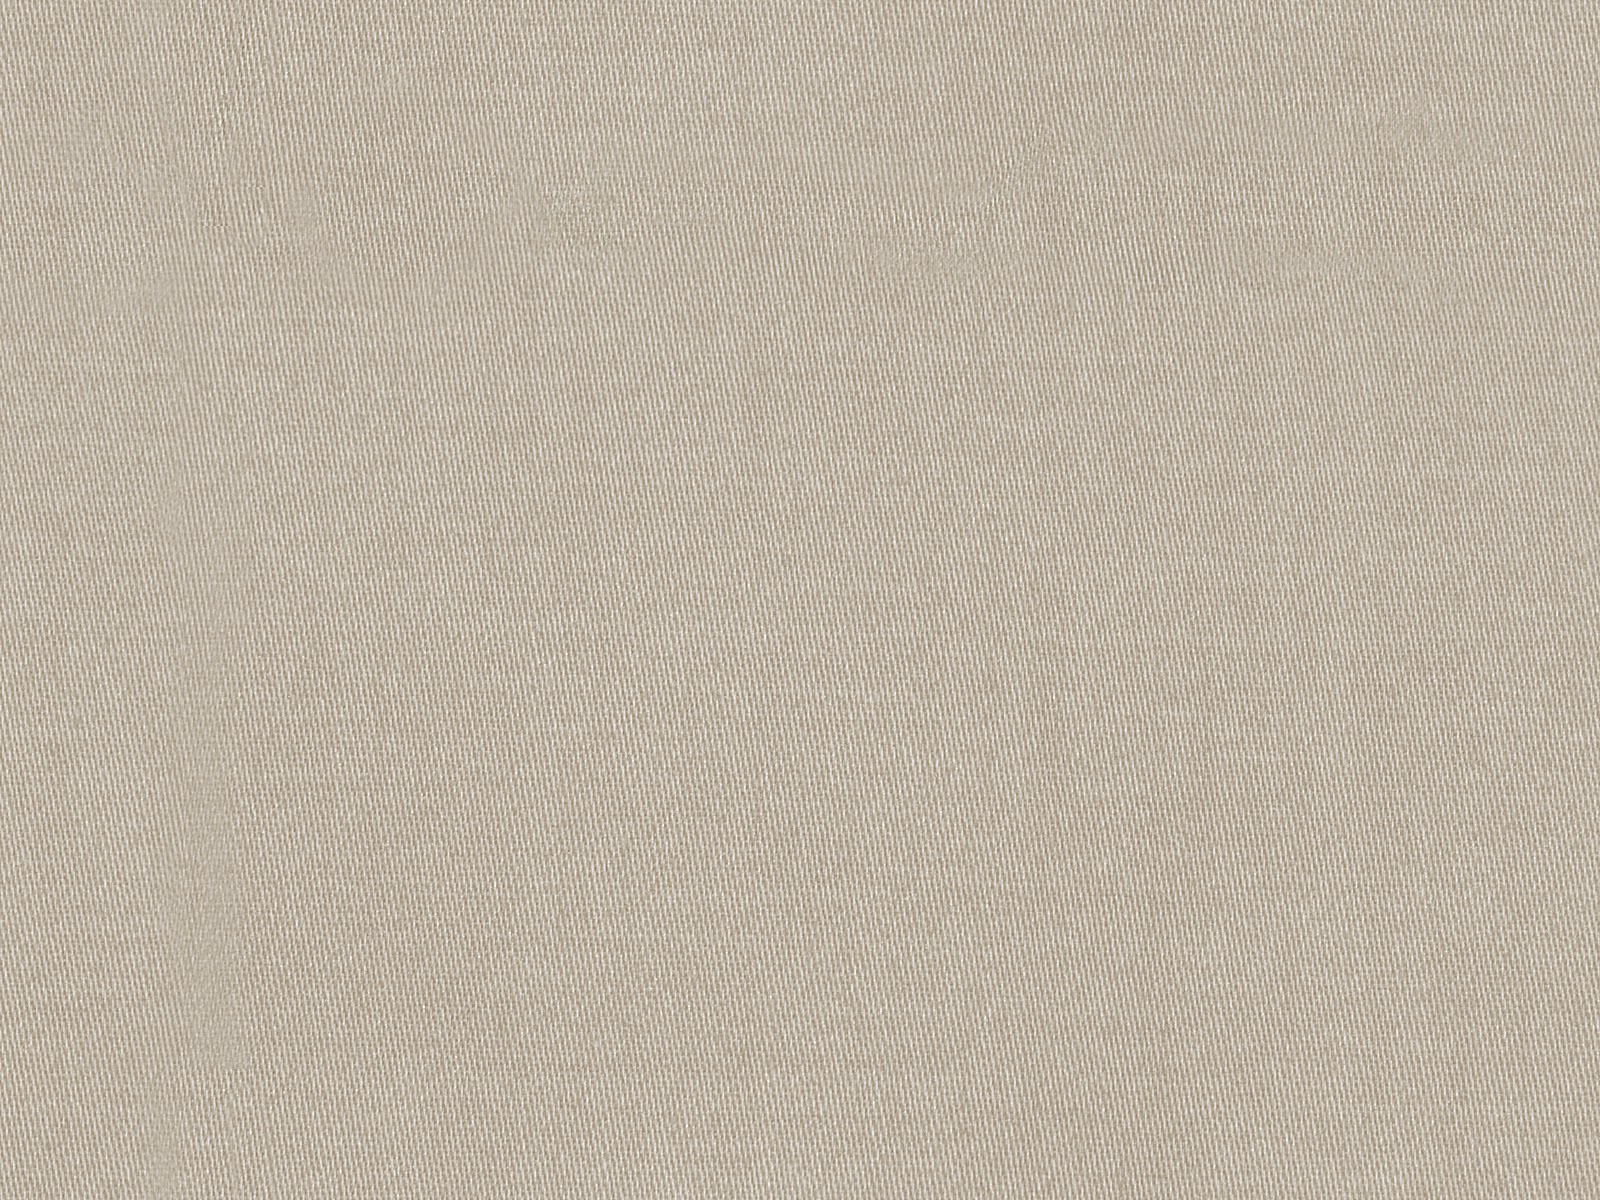 Texturise Free Seamless Textures With Maps Seamless Beige Fabric Texture Maps